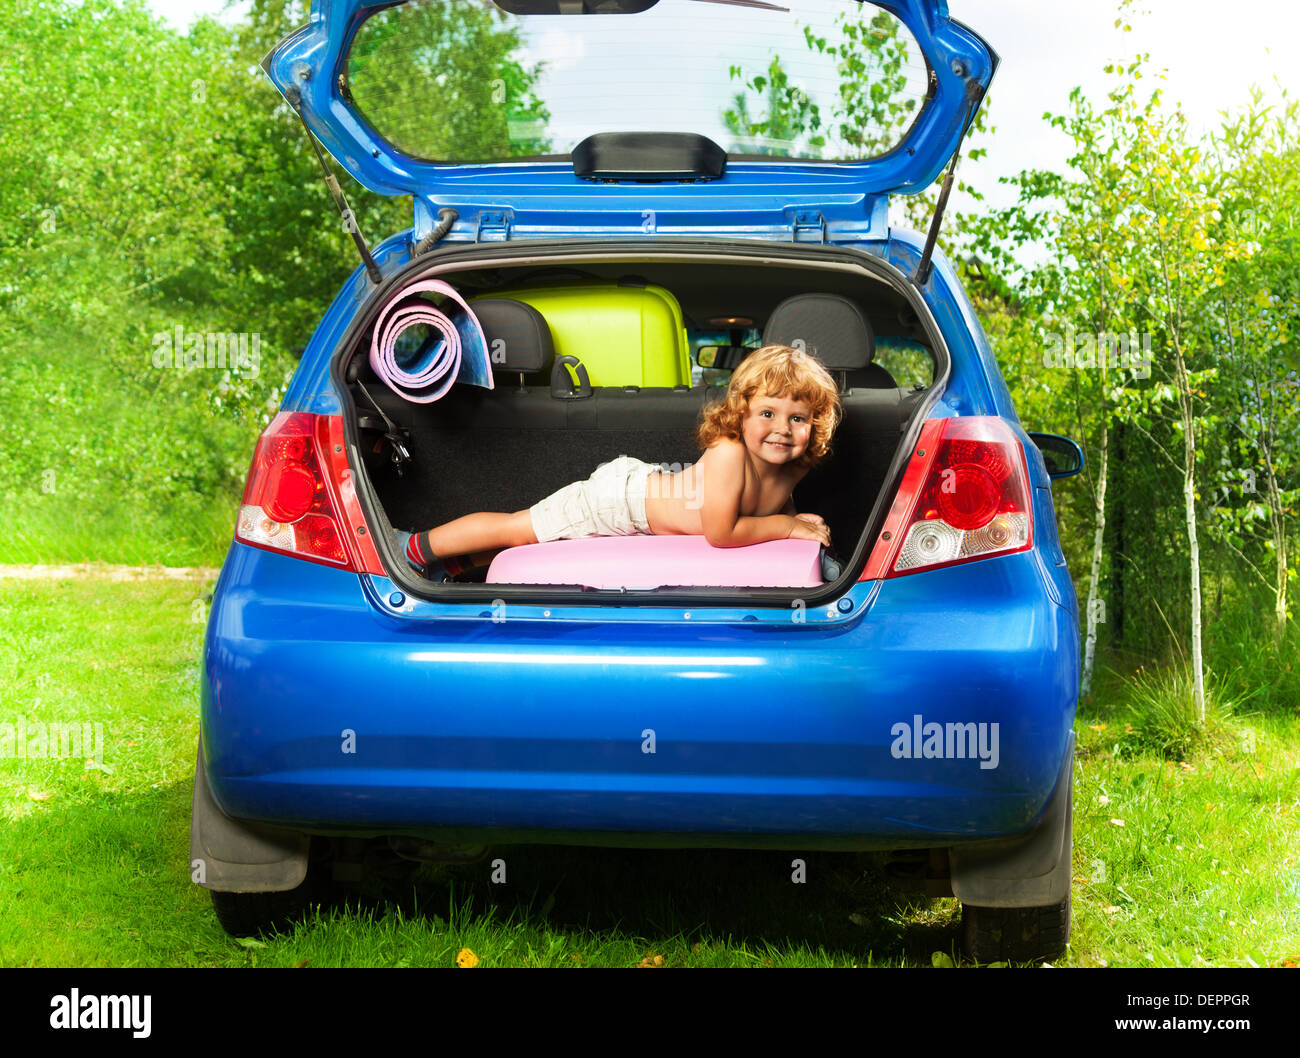 Cute little boy laying on the back of the bags and baggage in the car trunk ready to go on vacation - Stock Image